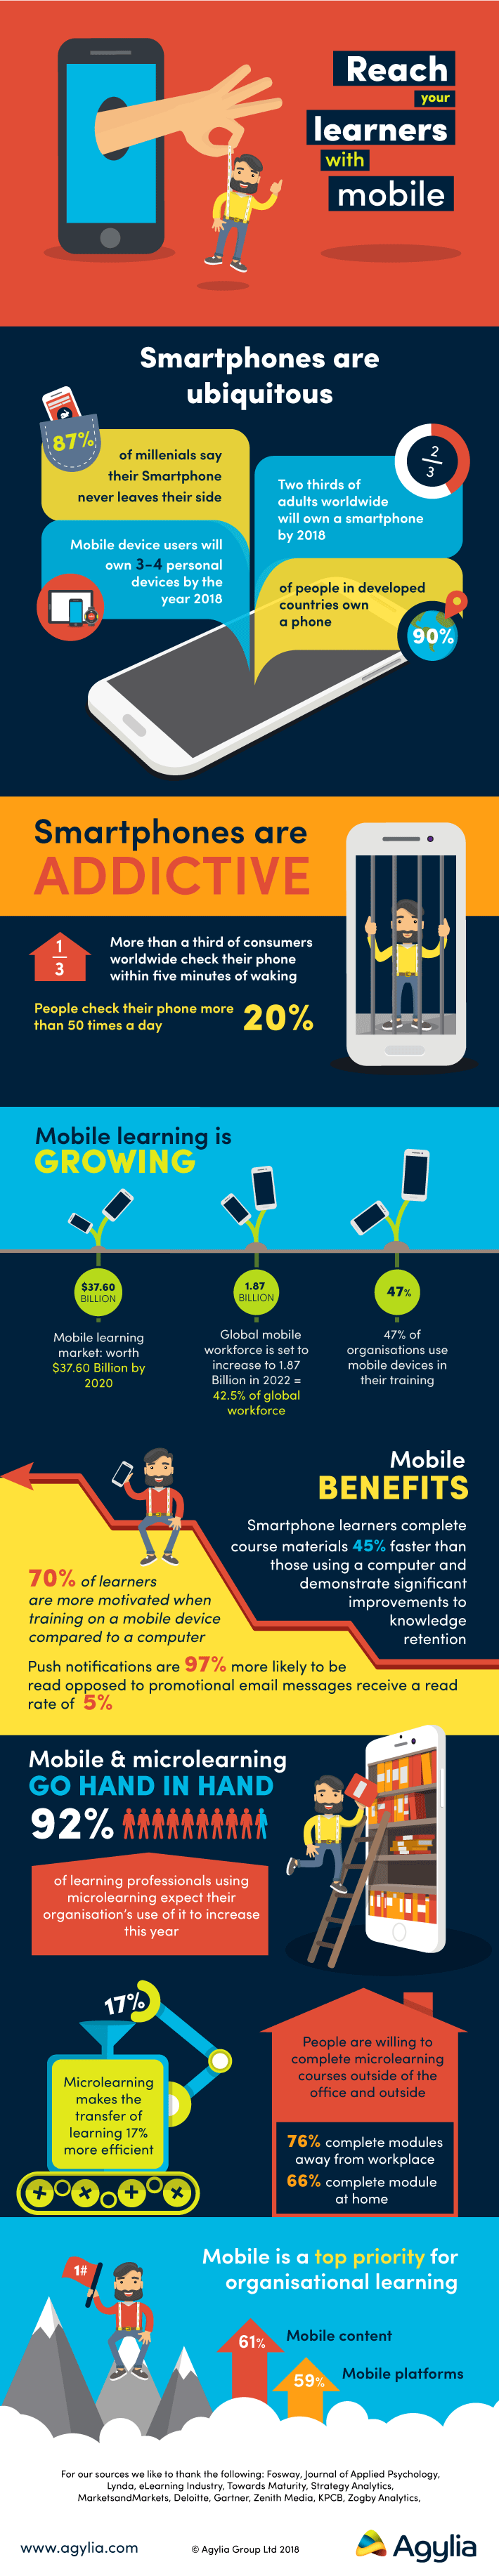 Reaching Learners With Mobile Learning Infographic